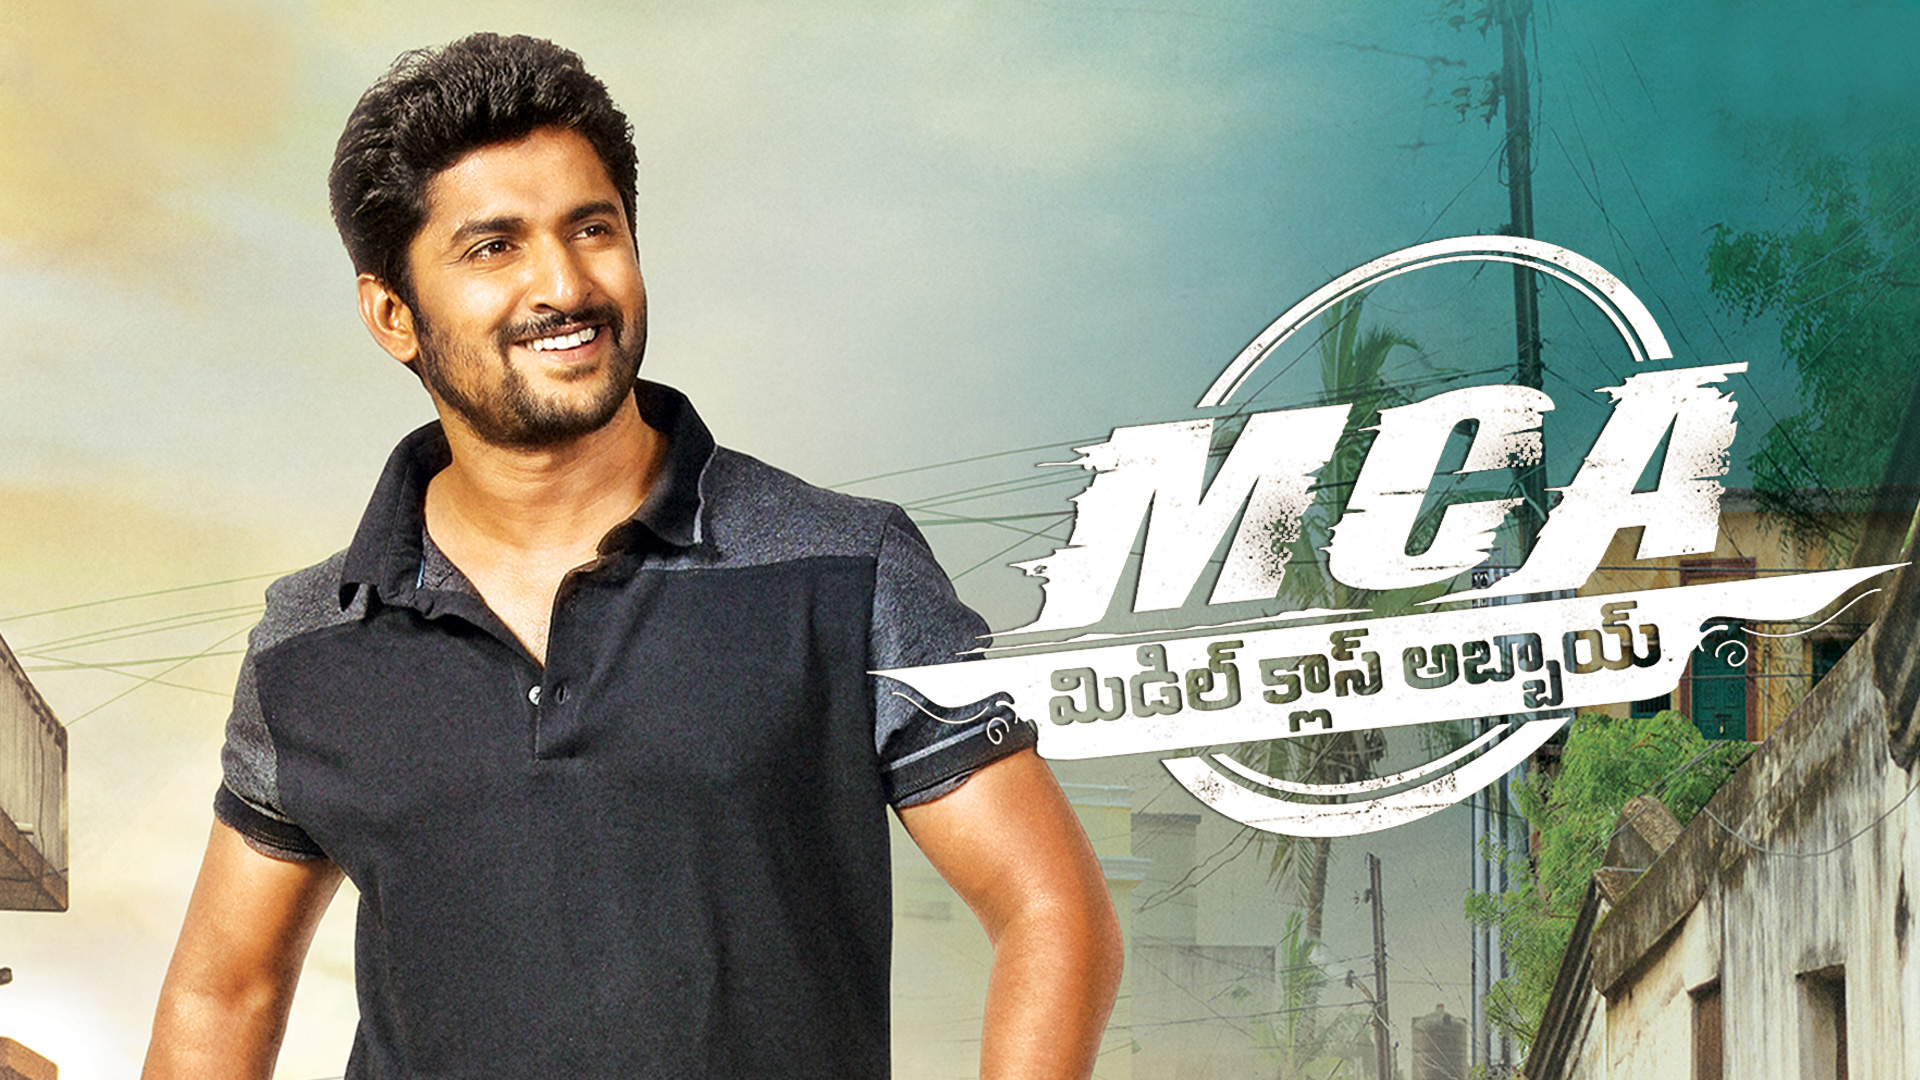 MCA (Middle Class Abbayi)